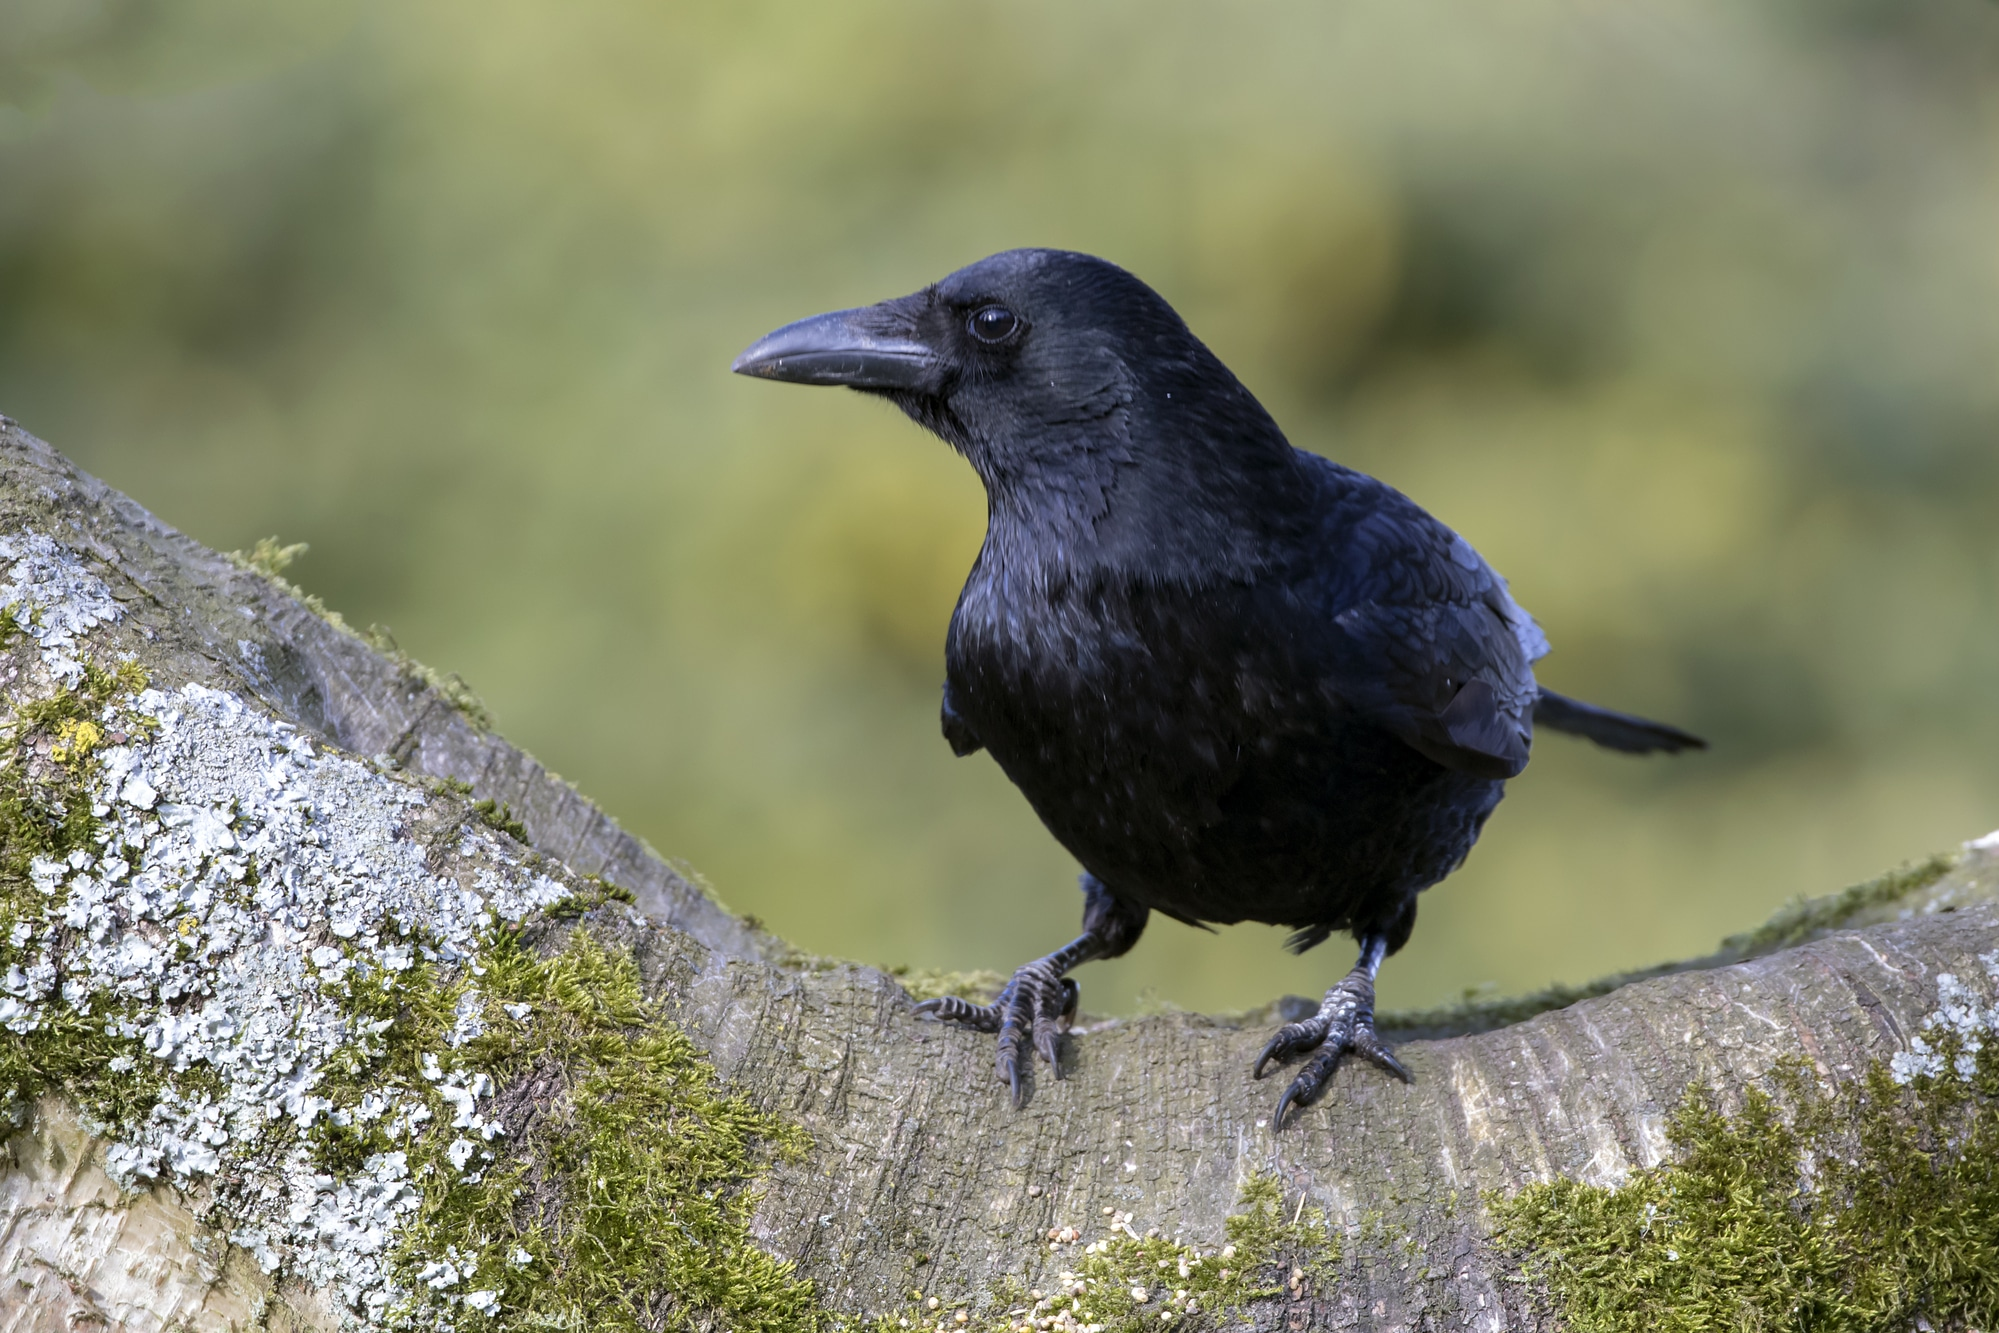 Close-up of Carrion Crow sitting on wide branch